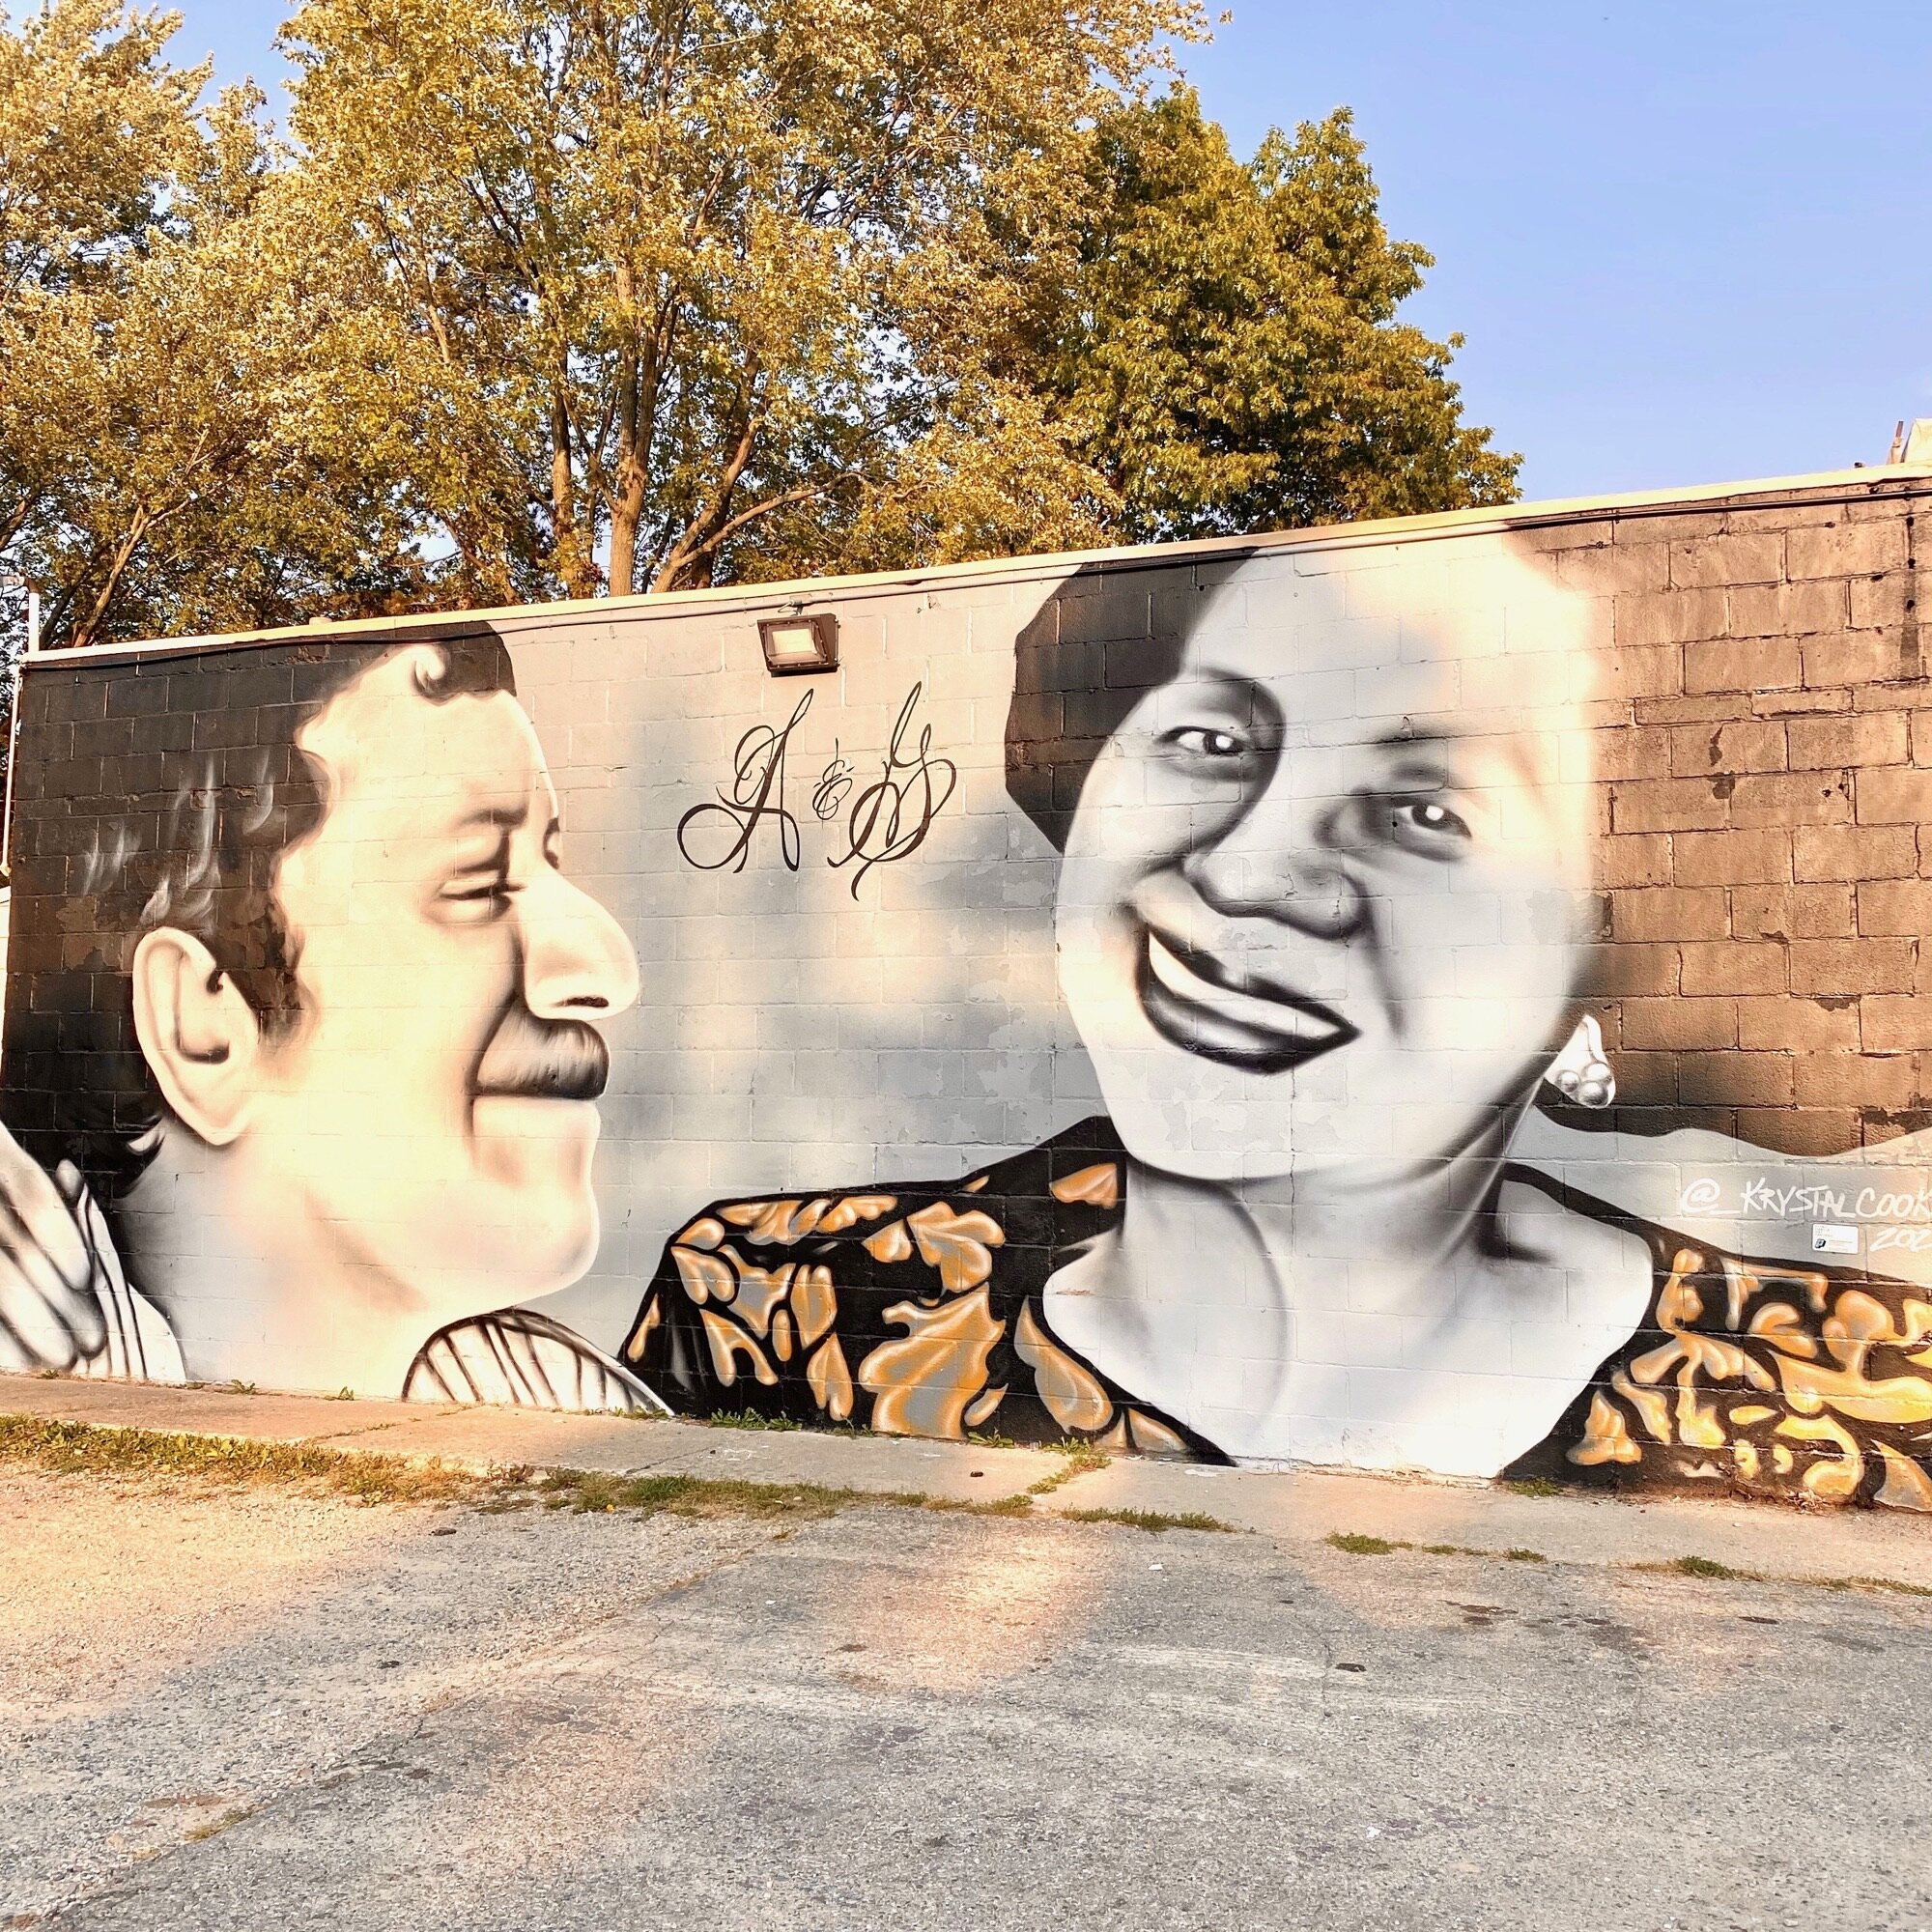 Local artist Krystal Cooke created this mural of A&G founders and namesakes Guadalupe and Abraham Alberto.